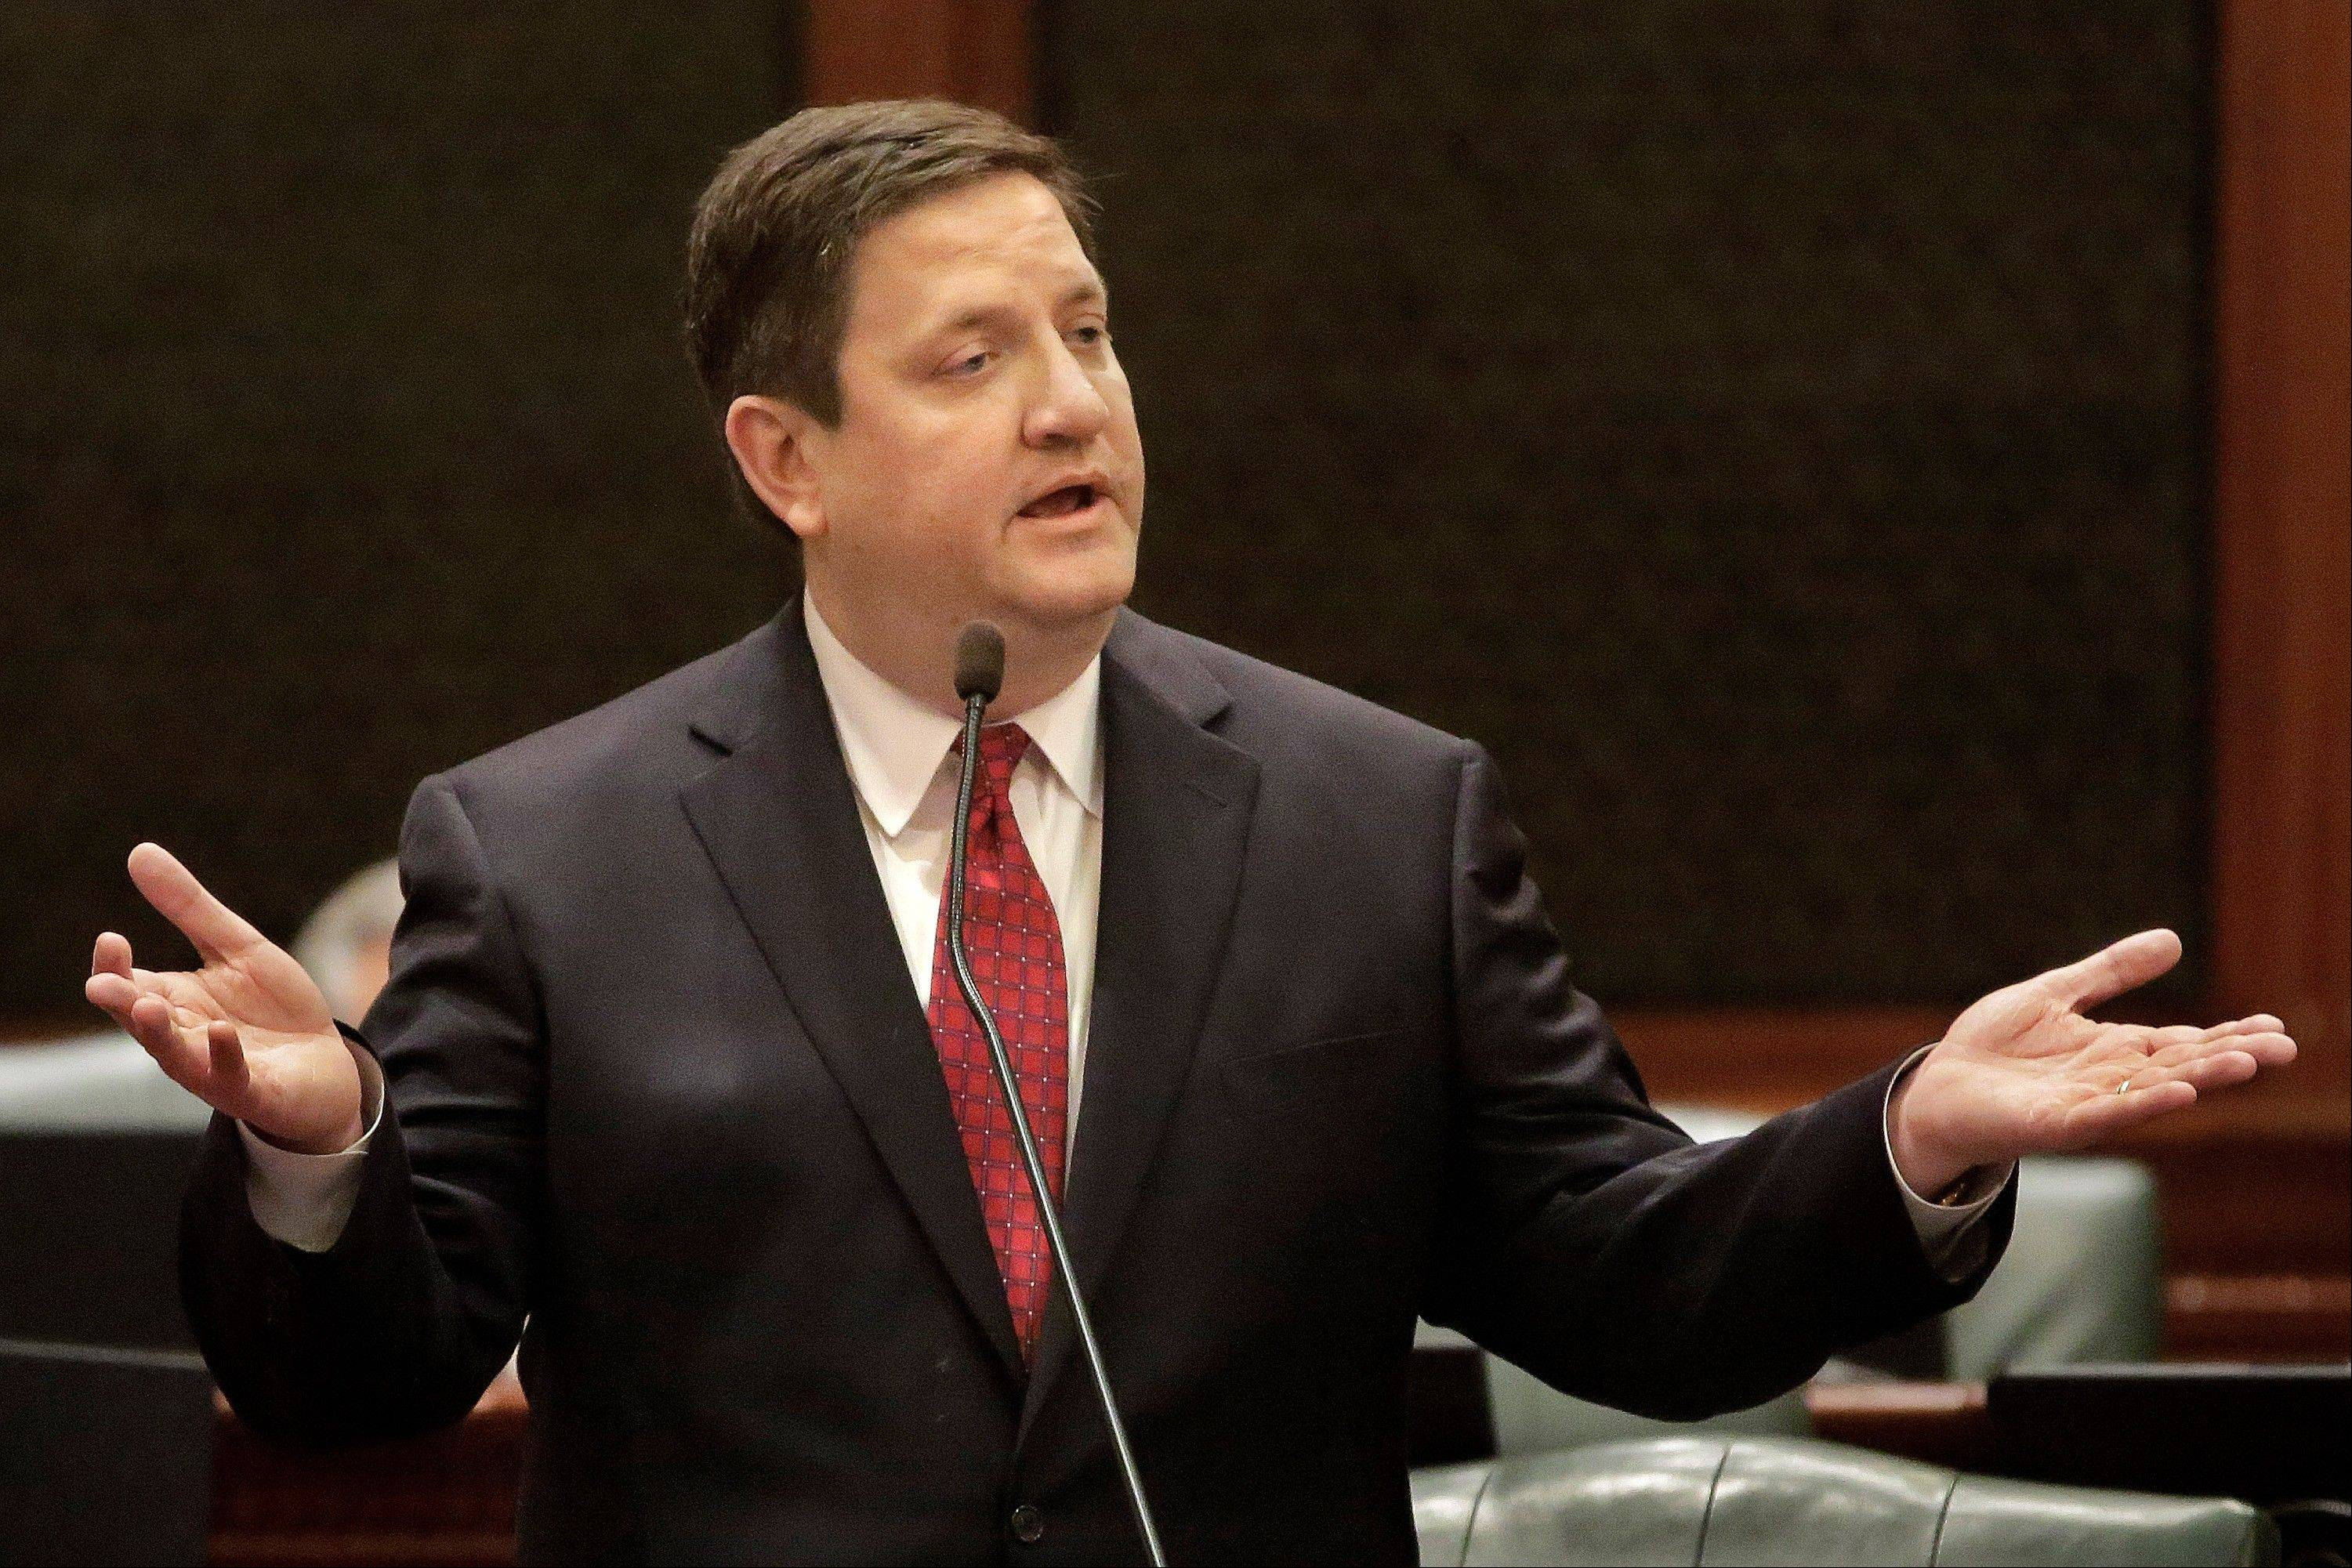 Illinois Rep. David McSweeney, R-Barrington Hills, argues pension legislation while on the House floor at the Illinois State Capitol Tuesday.